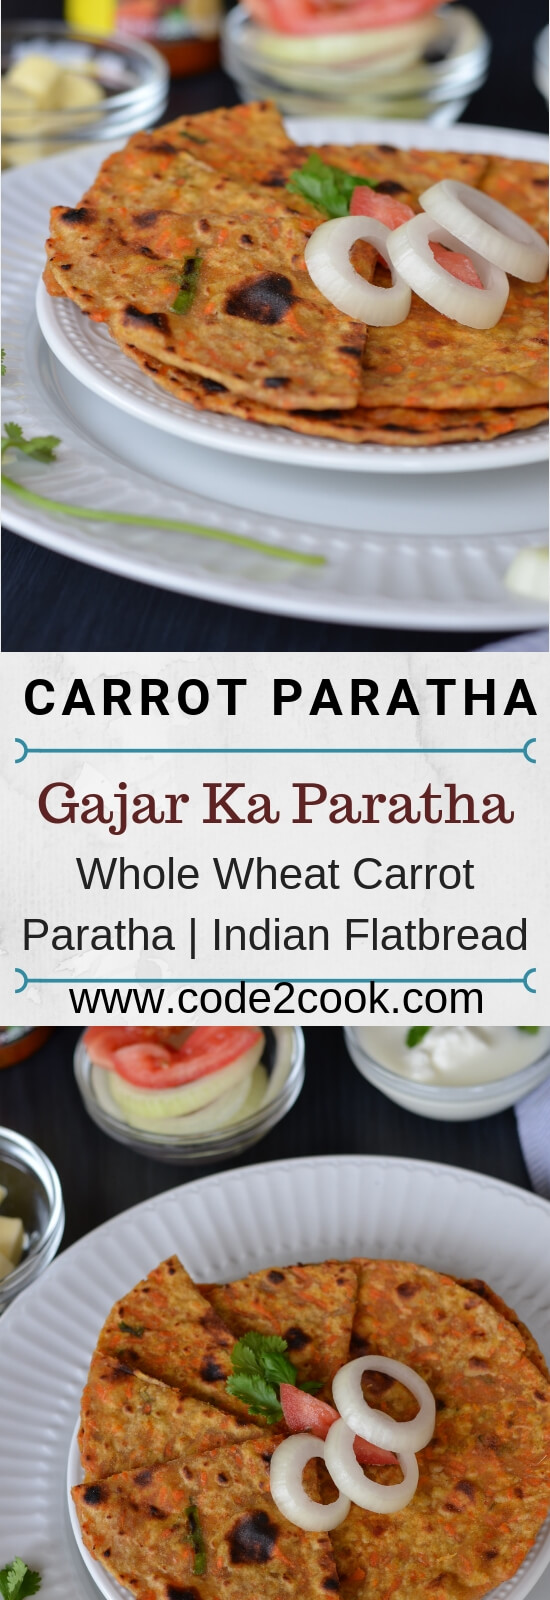 Gajar ka paratha or carrot paratha is a simple Indian flatbread which is healthy and delicious. Grated carrot mixed in whole wheat flour, flavored with cumin seed powder, chopped green chili, chopped green coriander, make a soft dough and roll out hot parathas. Makes a perfect breakfast or kids lunch box recipe.